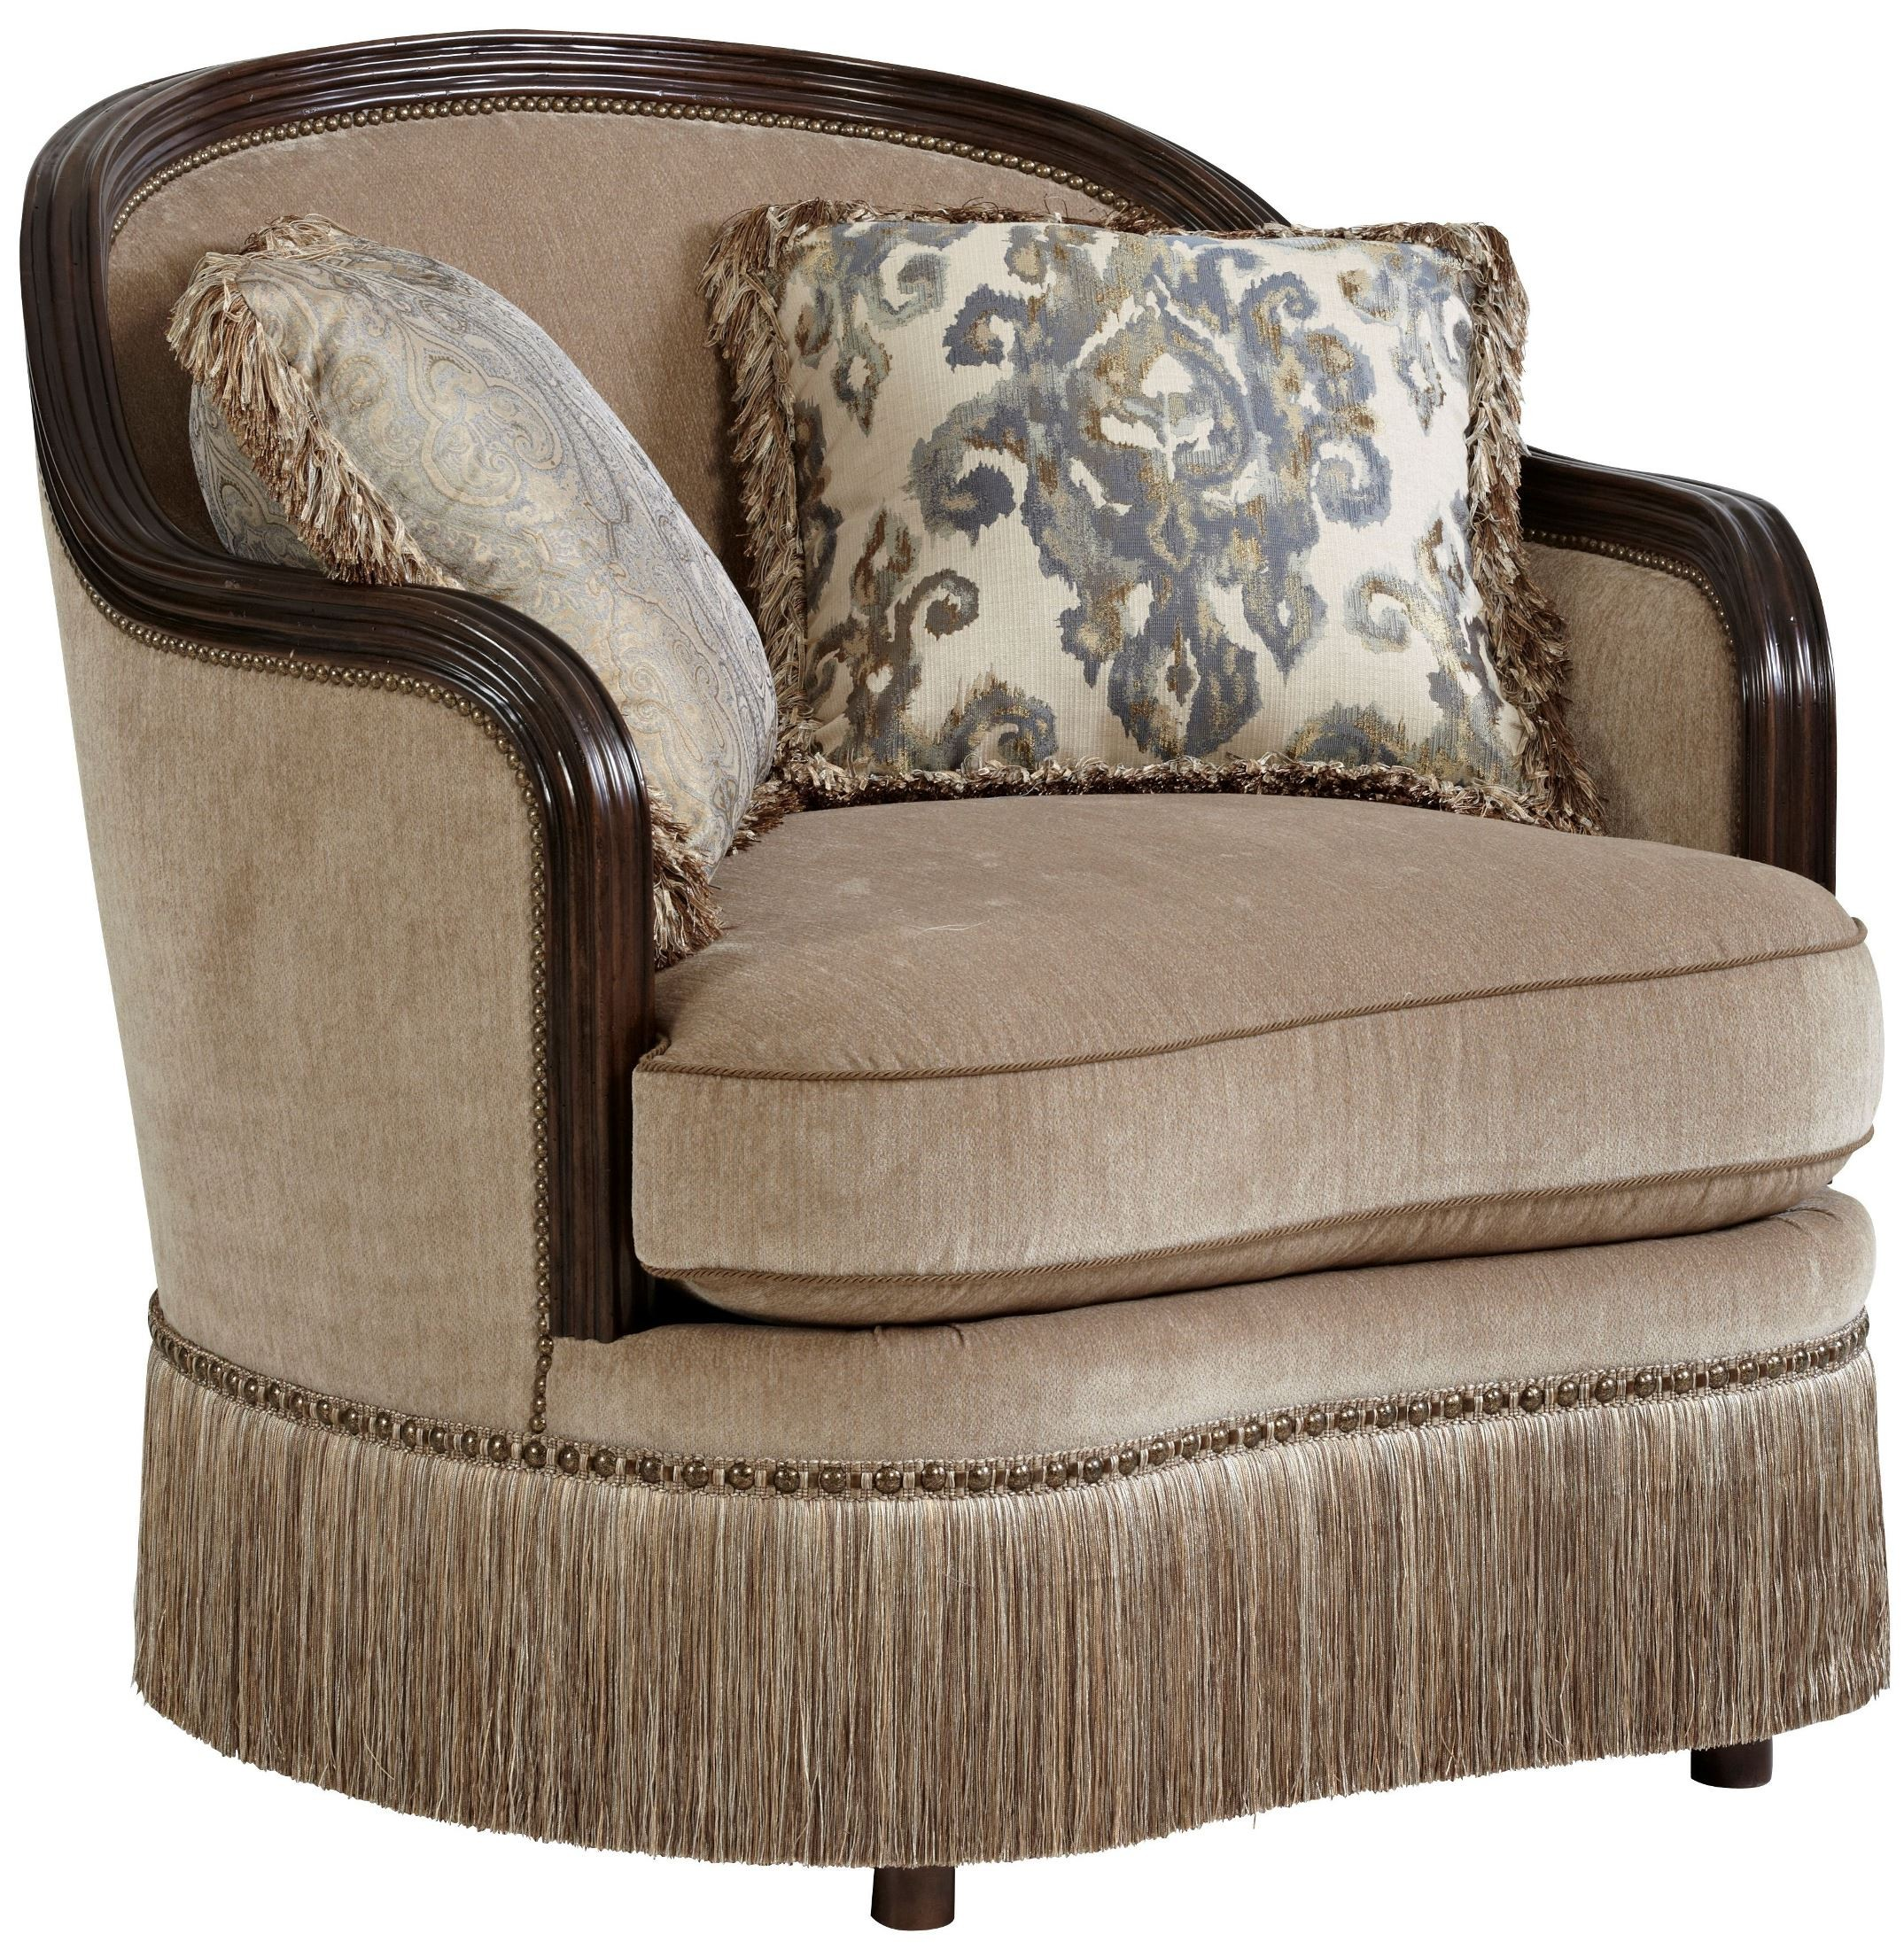 Upholstered Living Room Chairs Giovanna Azure Upholstered Living Room Set